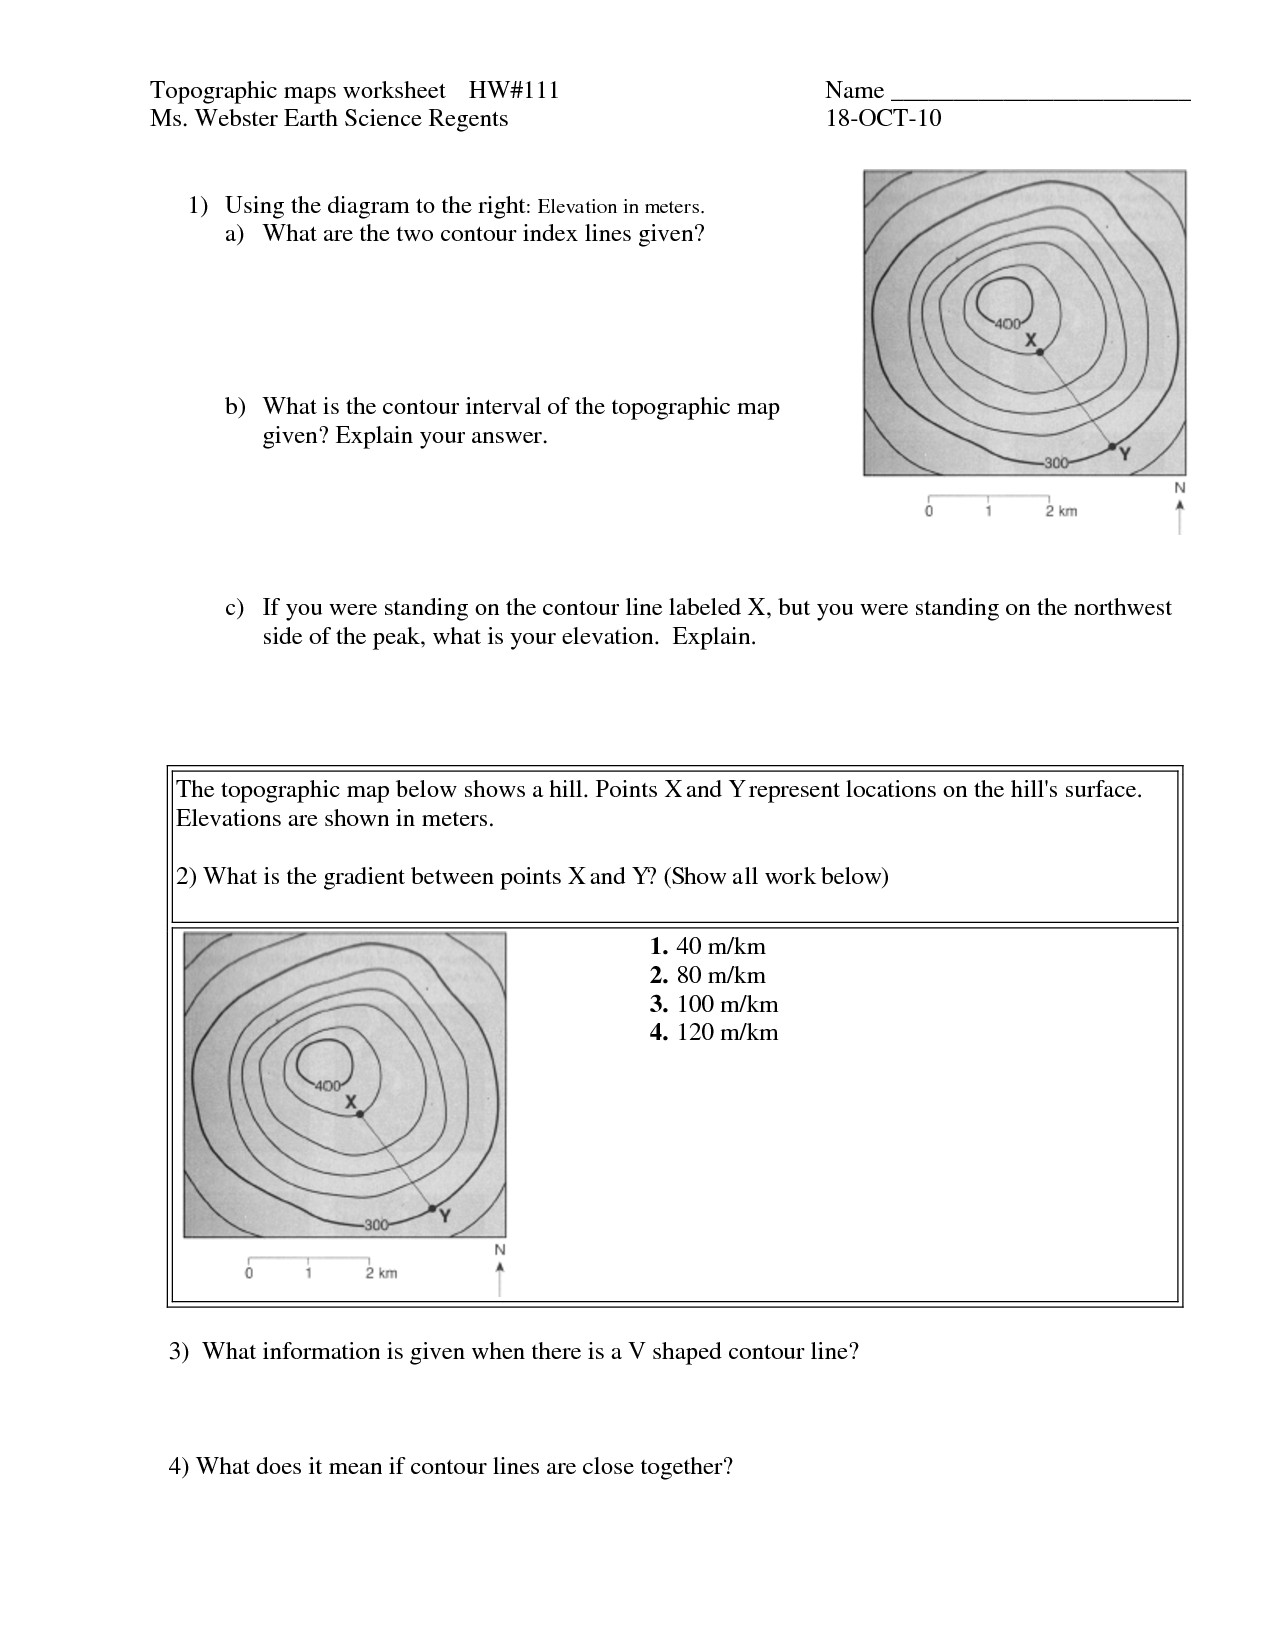 Topographic Map Reading Worksheet Answers